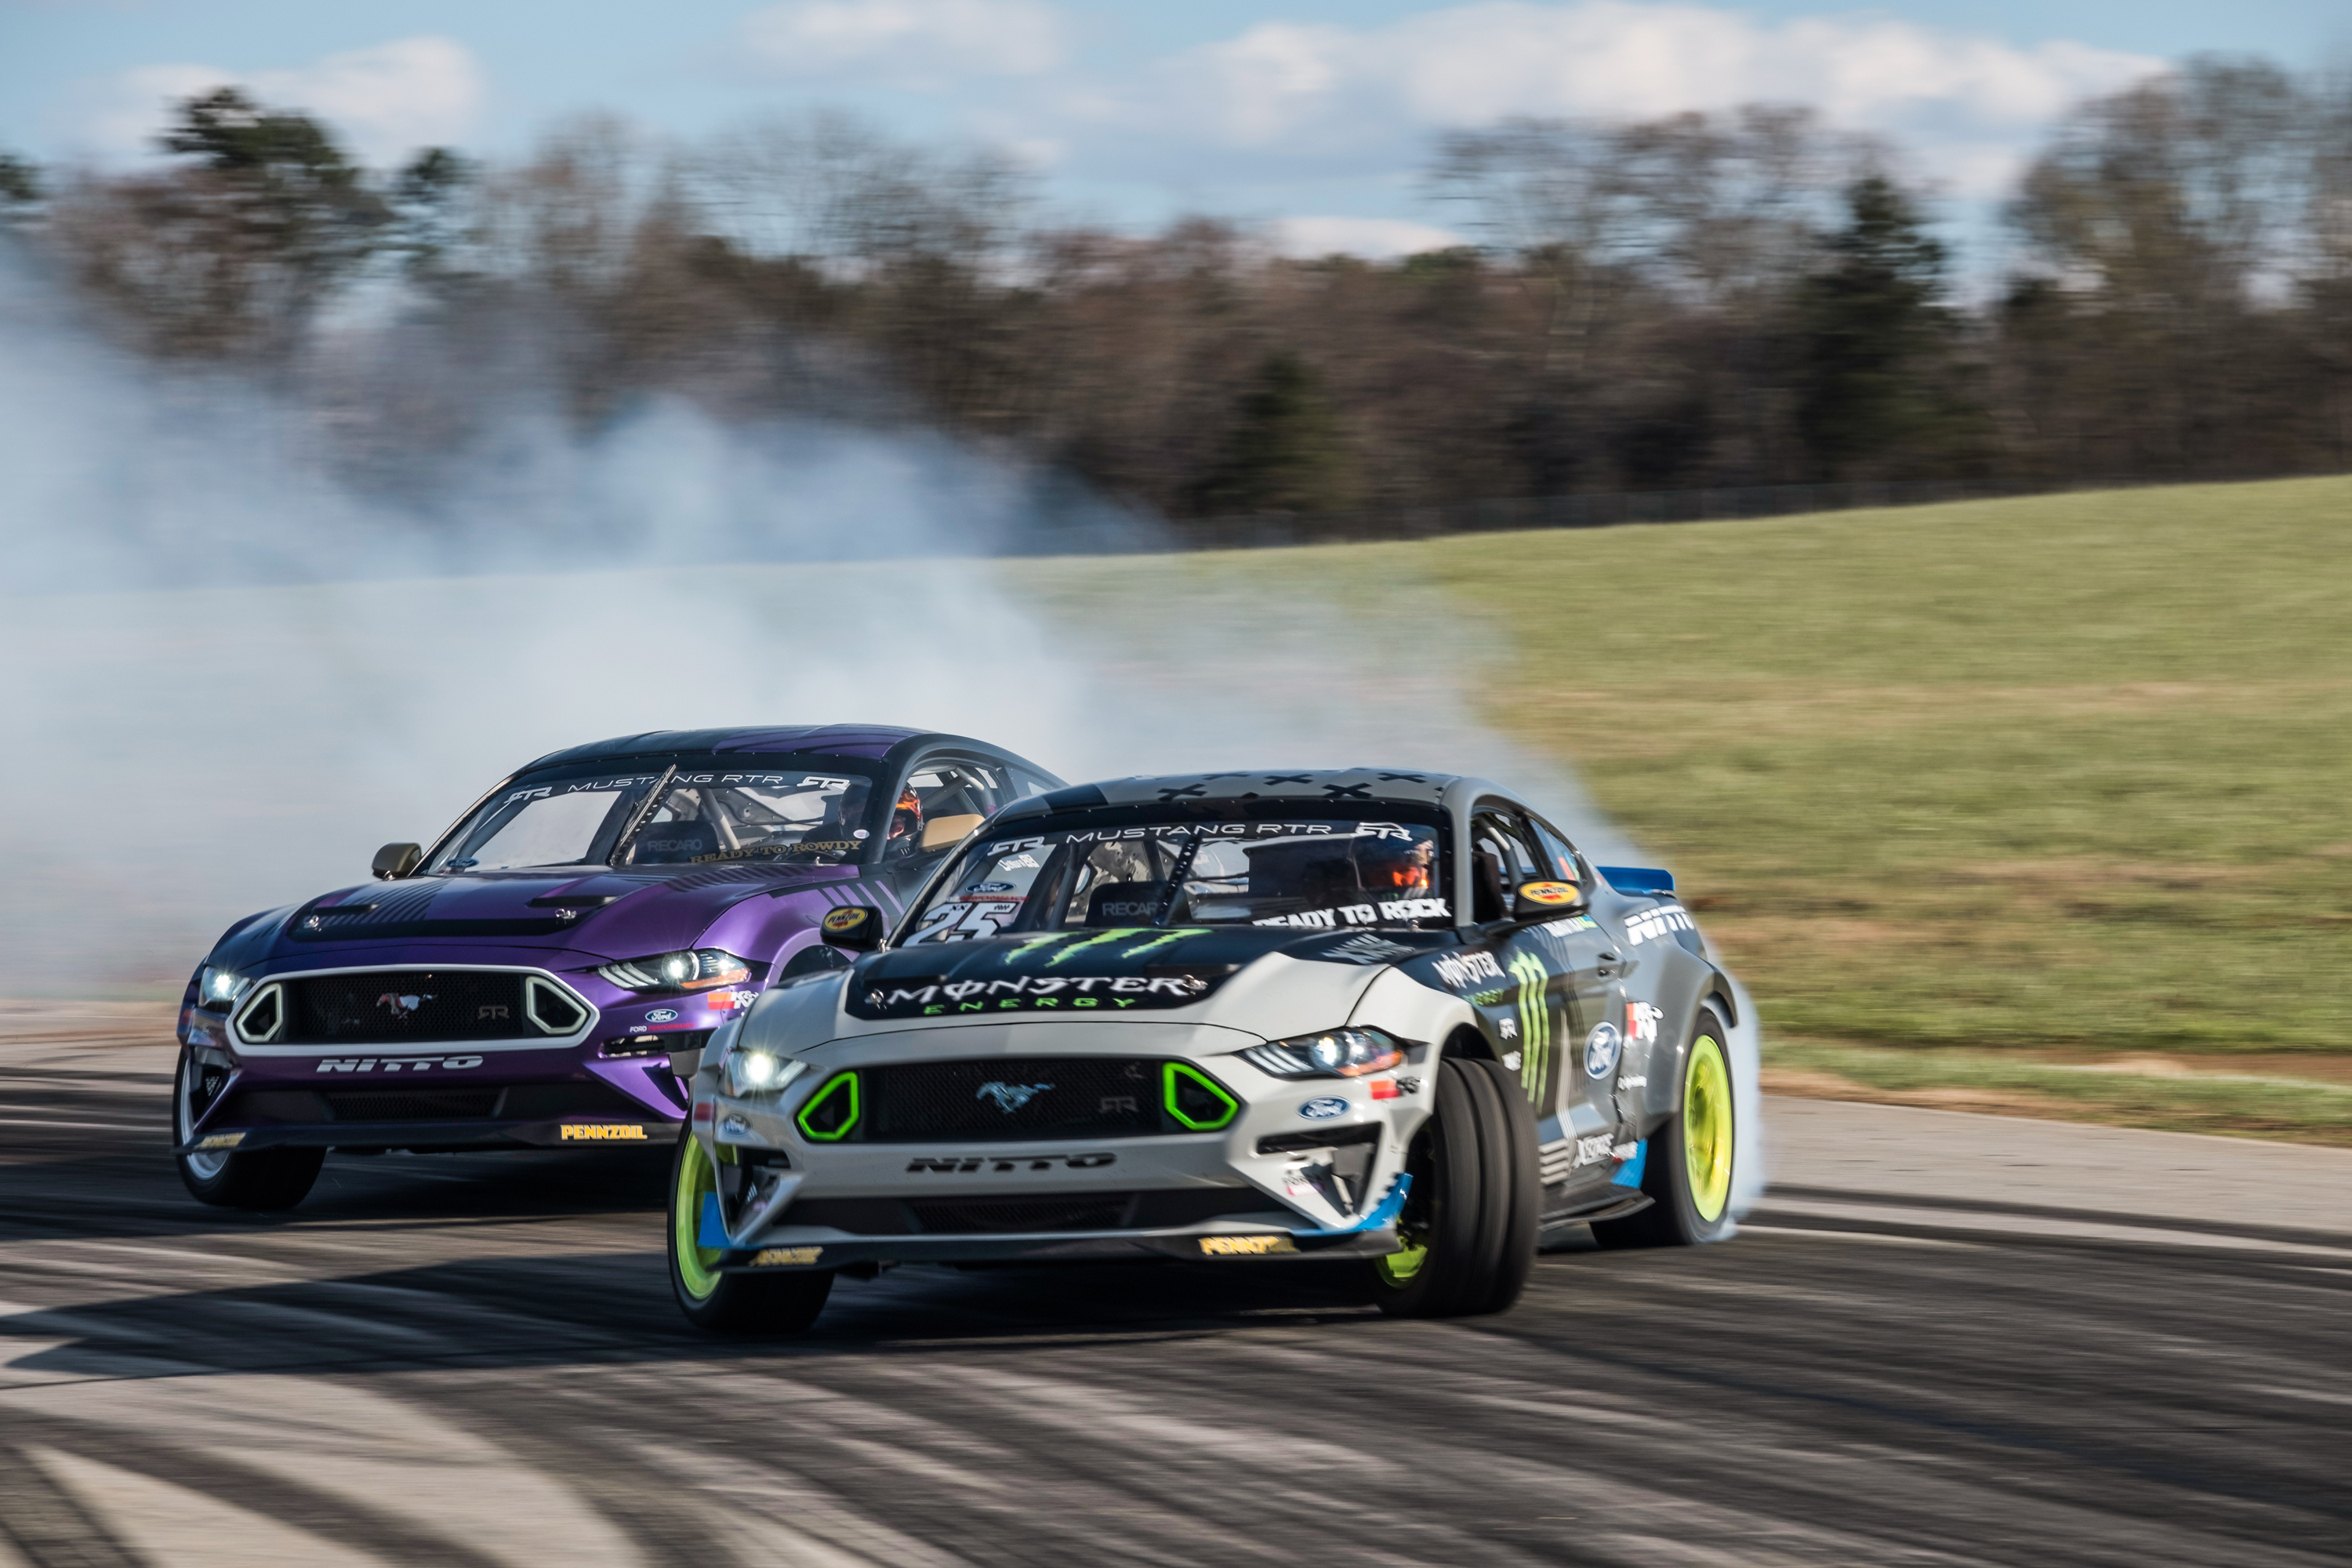 Cars for Sale Near Me Under 3000 Best Of Vaughn Gittin Jr and Chelsea Denofa Unveil 2018 Mustang Rtr formula